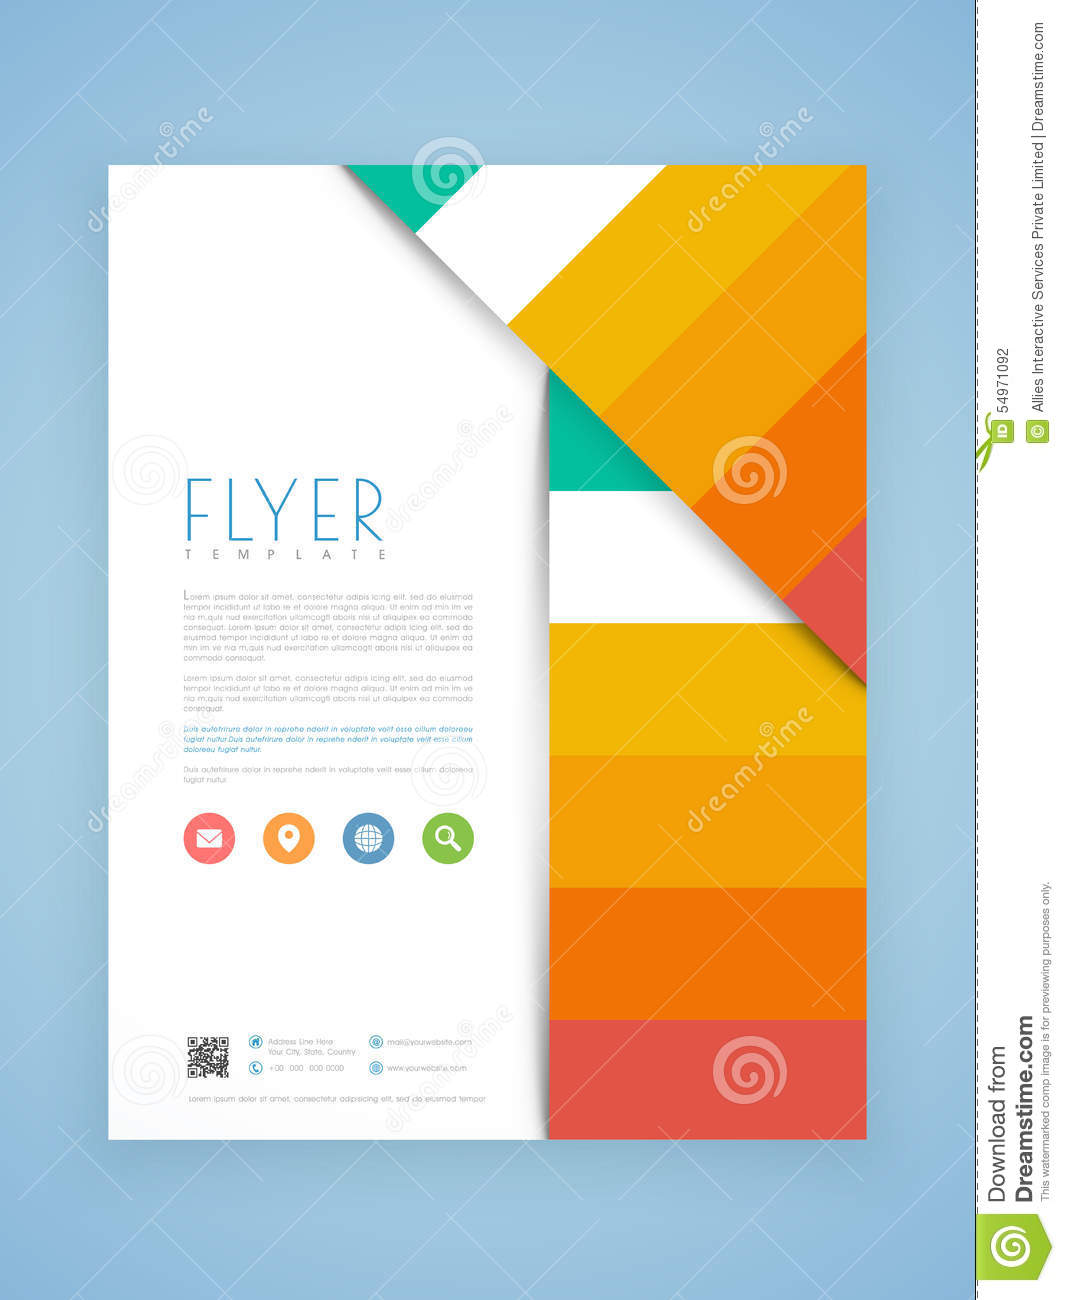 Business Flyer Brochure Or Template Design Illustration – Business Brochure Design